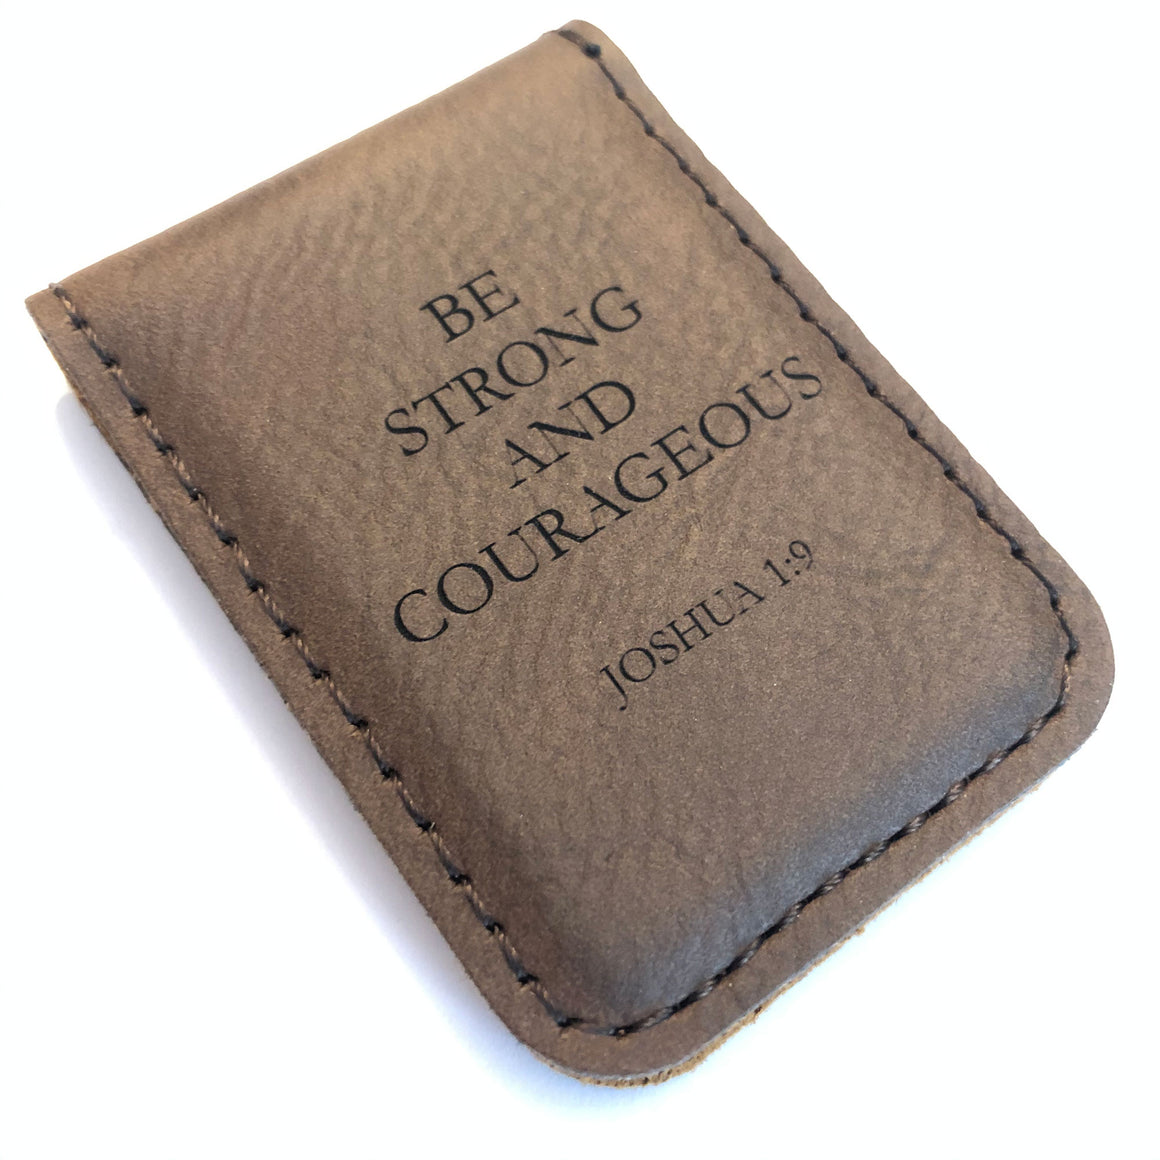 Be Strong And Courageous, Joshua 1:9 – Engraved Money Clip